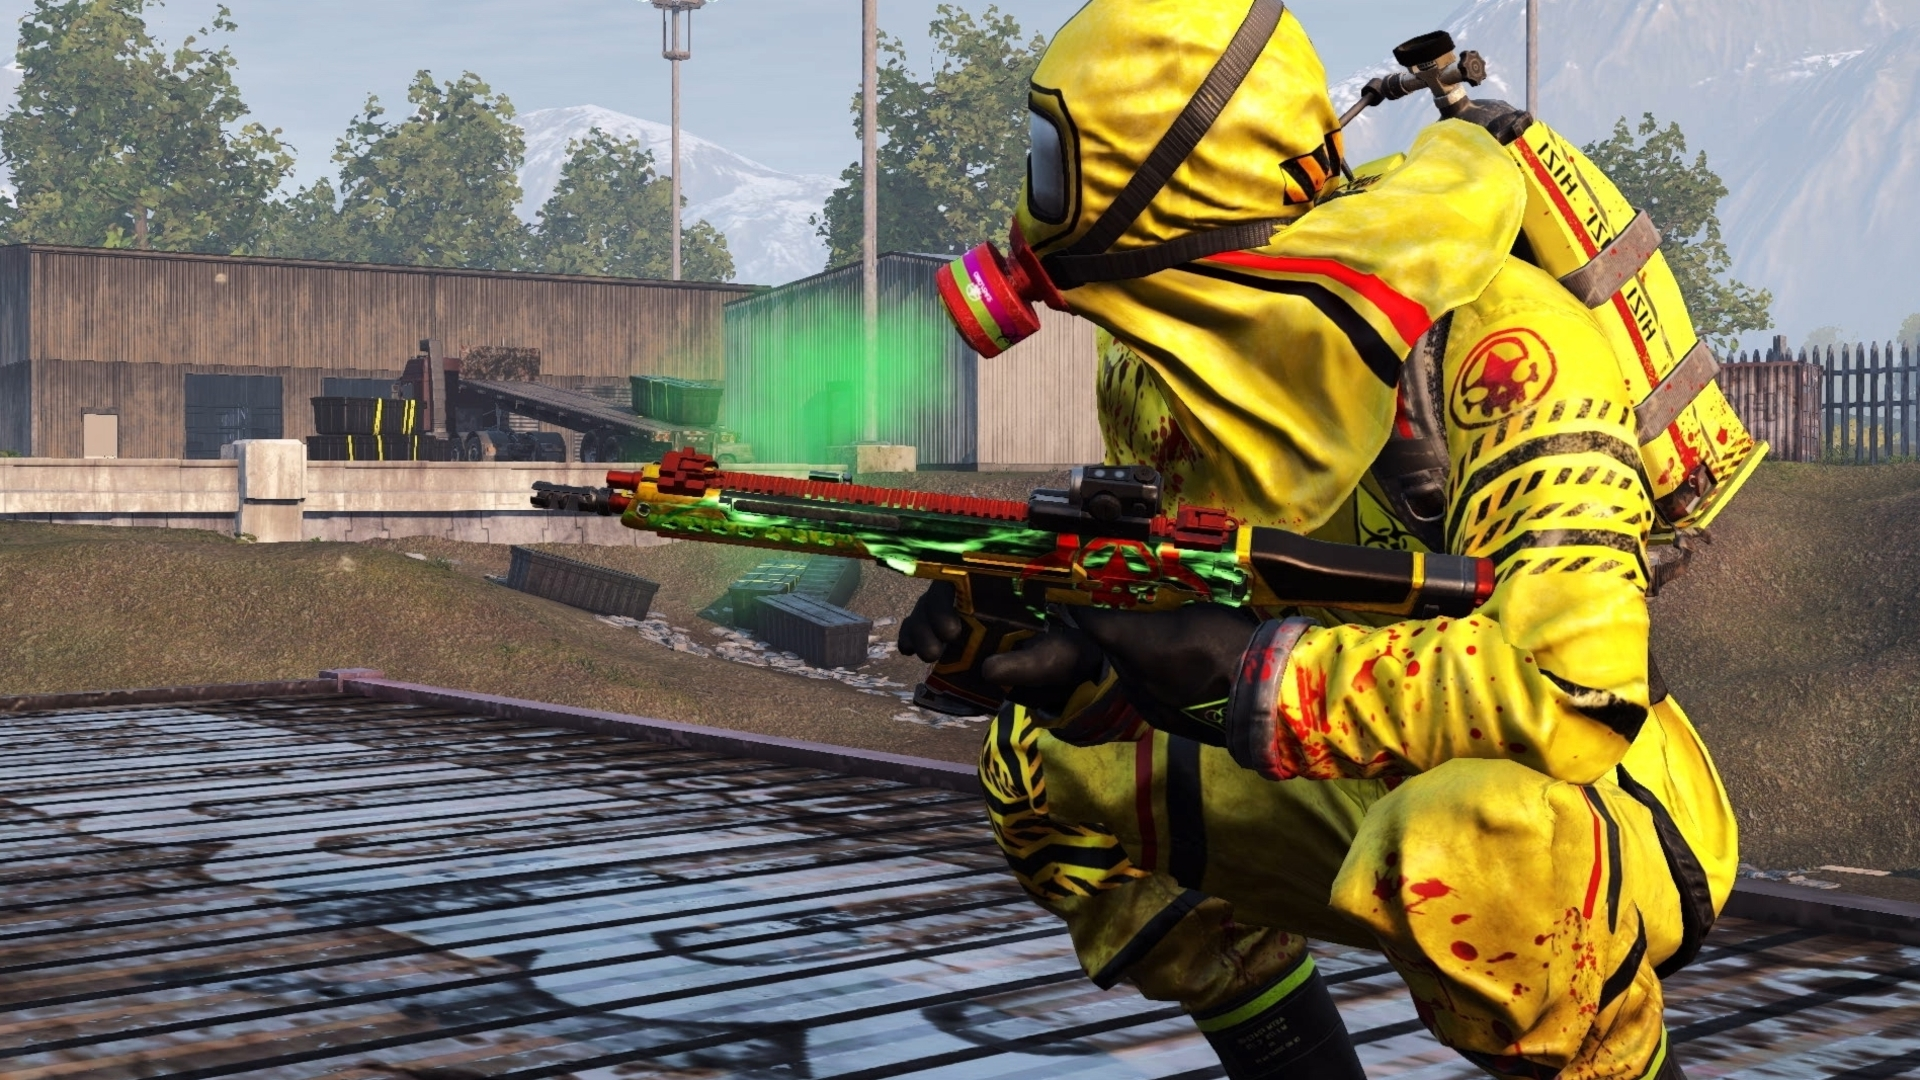 H1Z1's upcoming free expansion adds a new 50 player FFA Deathmatch mode